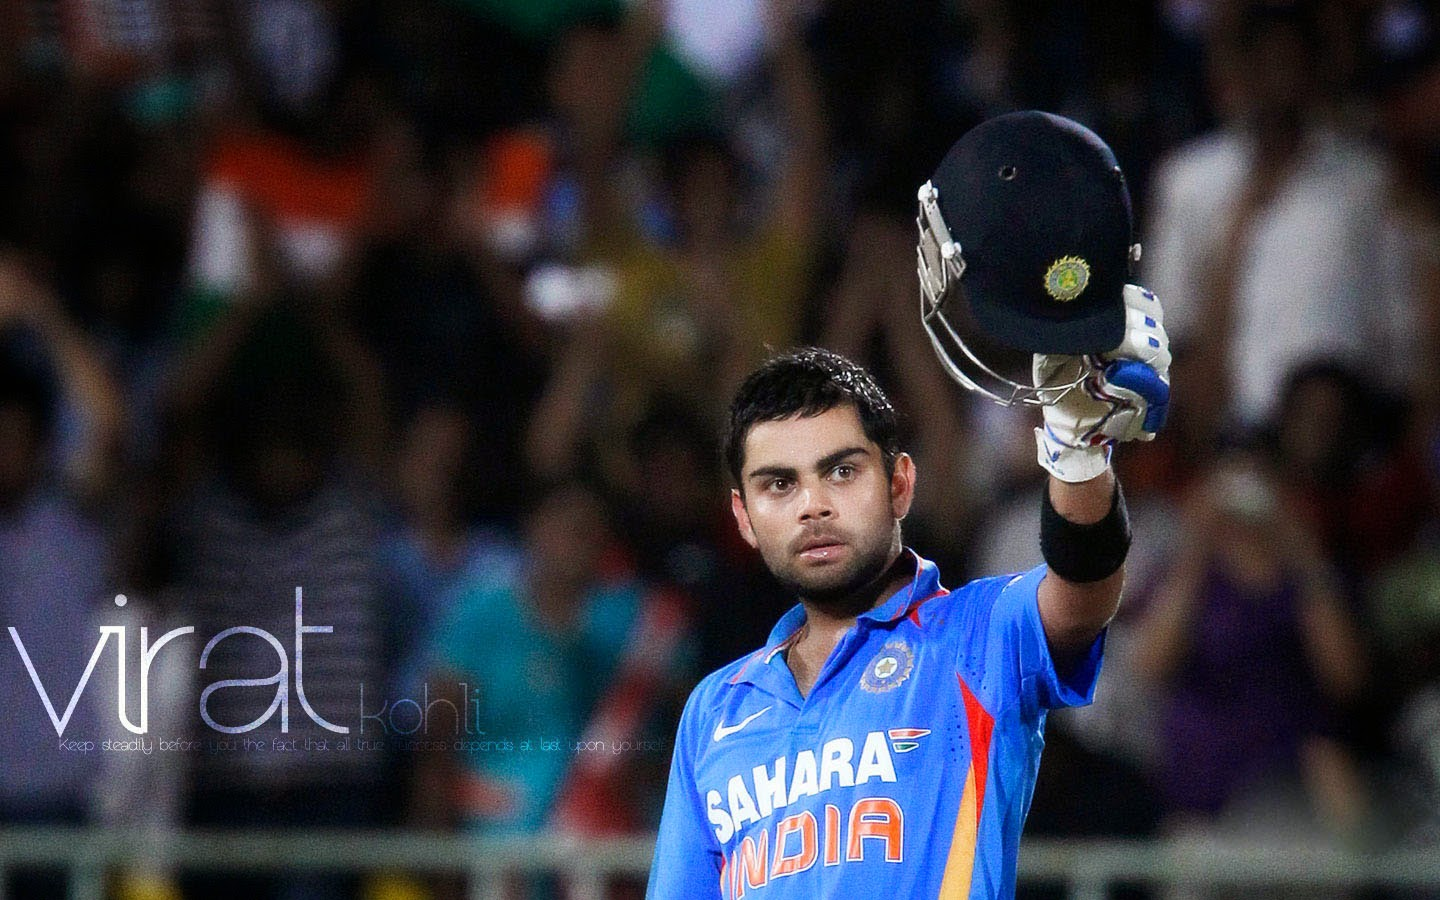 Virat Kohli India Cricketer Hd Wallpapers Cricket Wallpapers